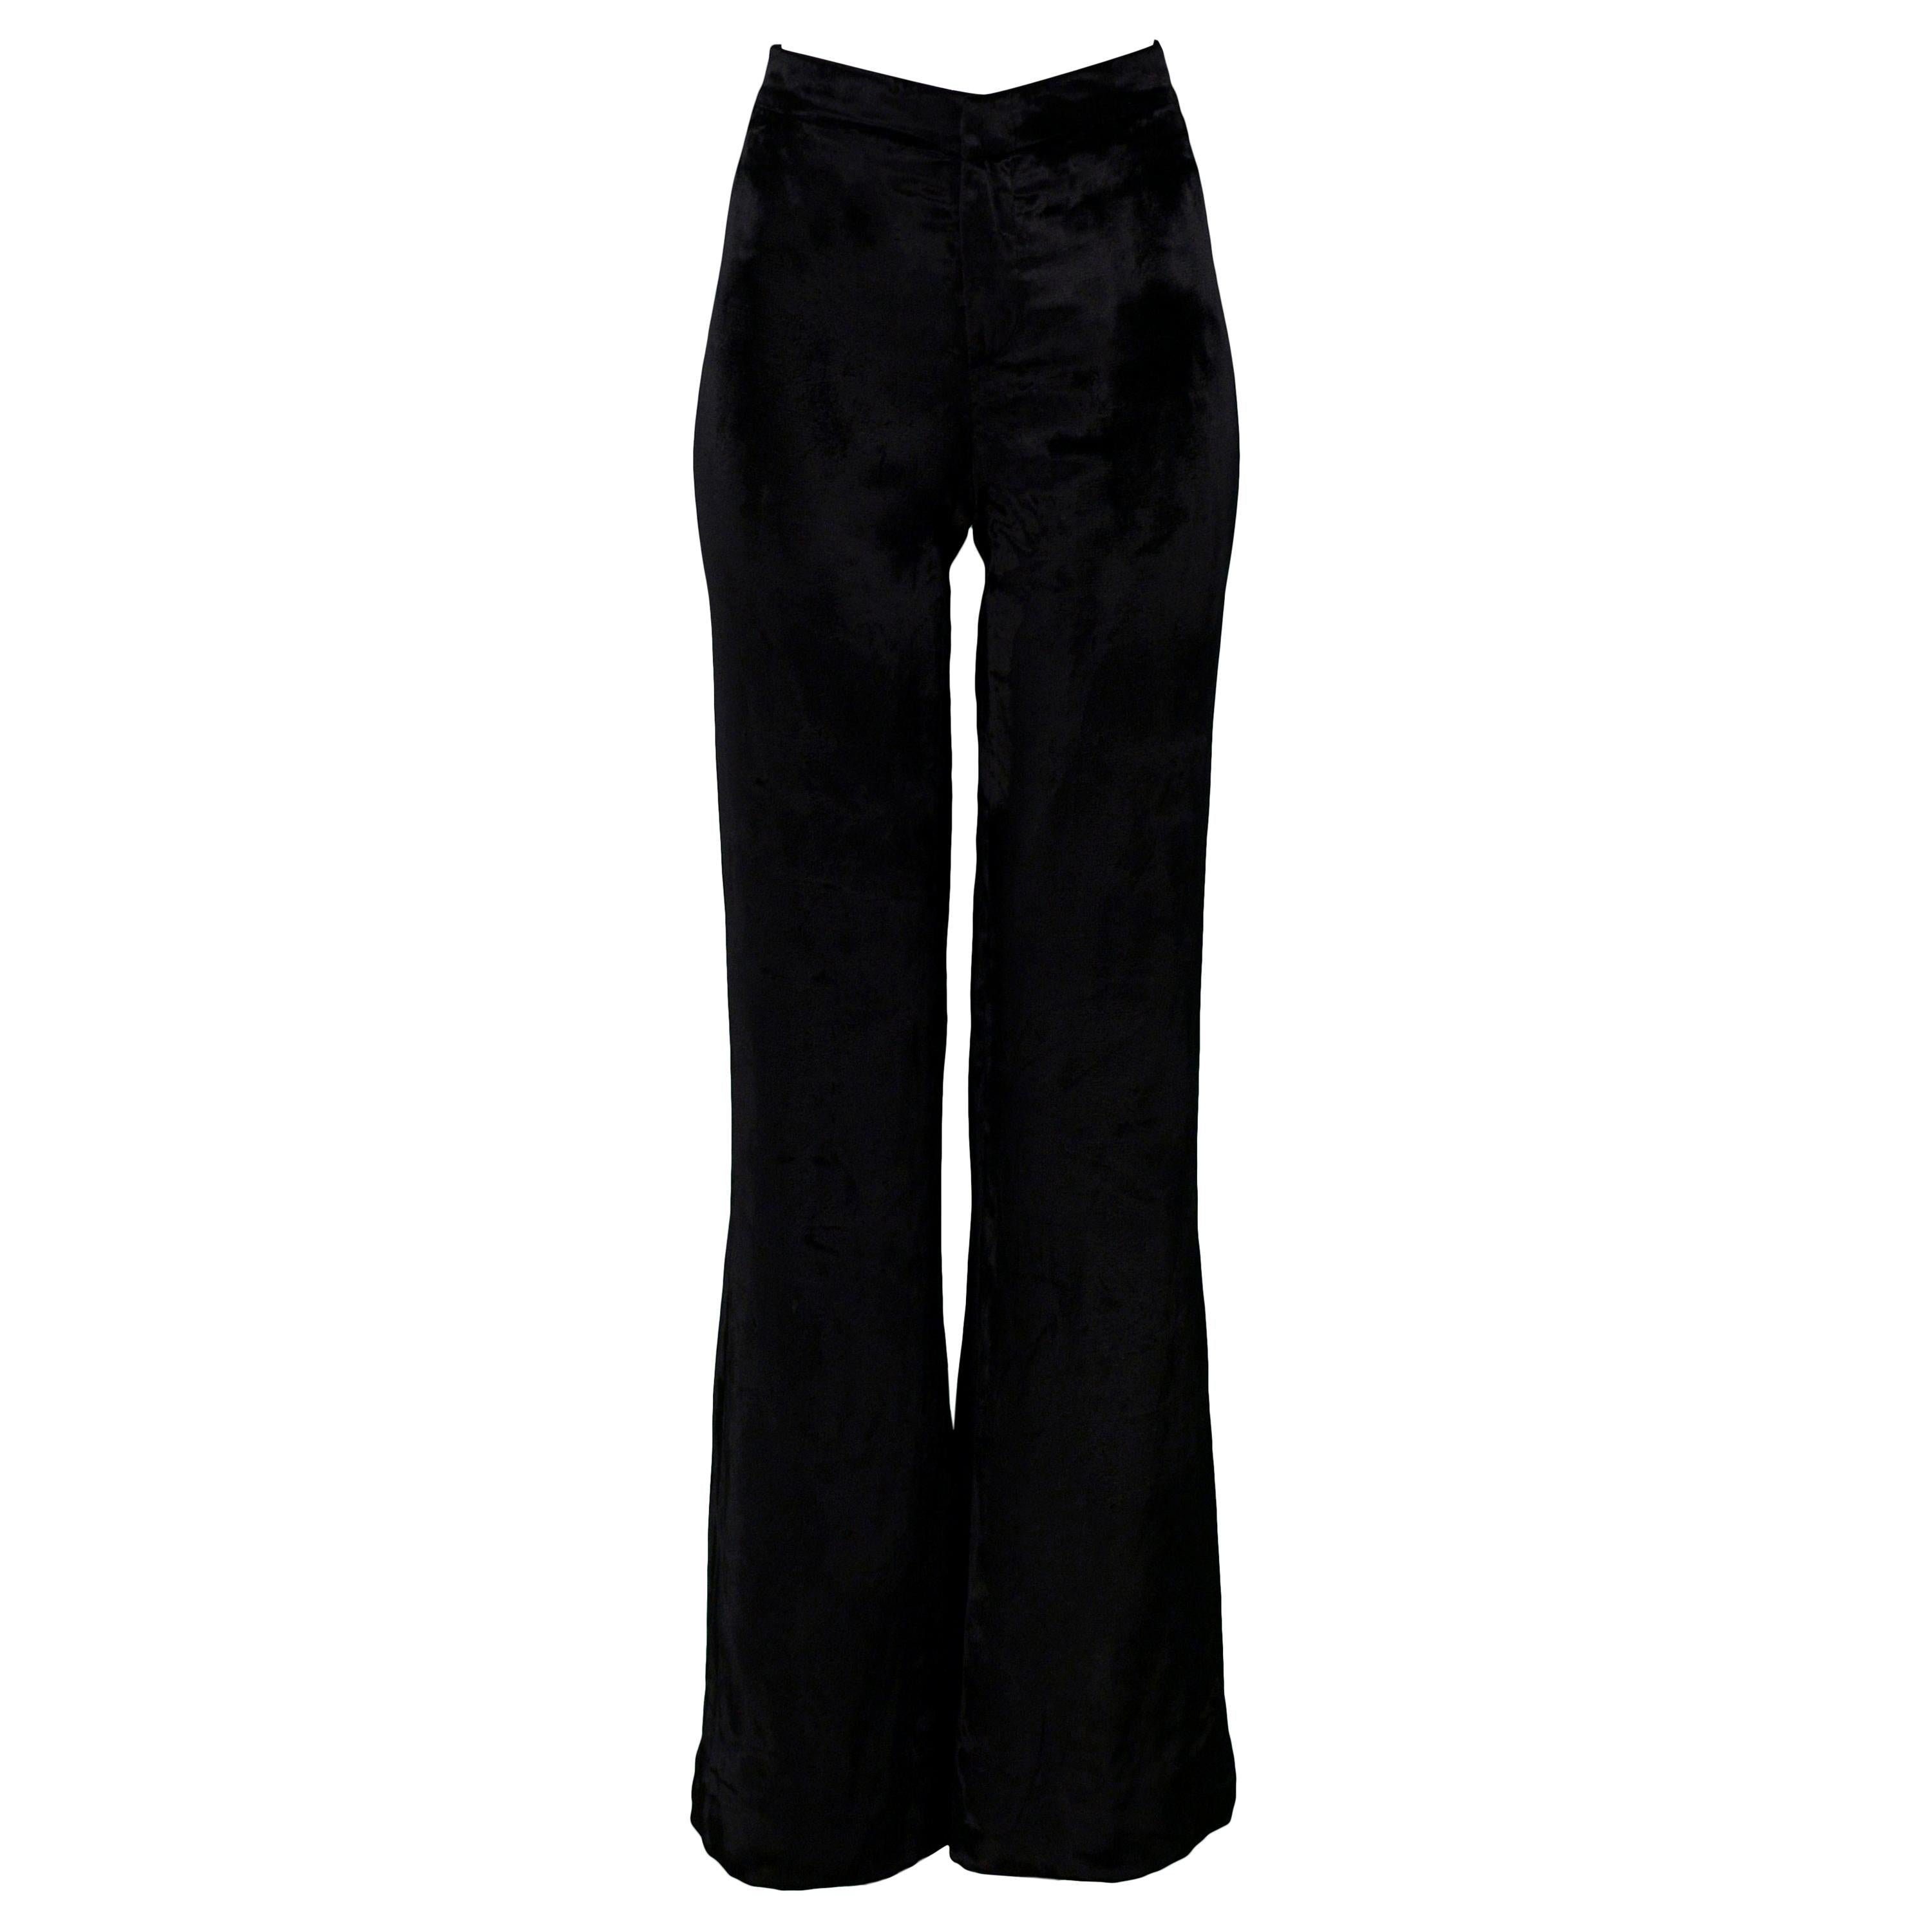 Stunning Gucci by Tom Ford Black Velvet Flare Pants